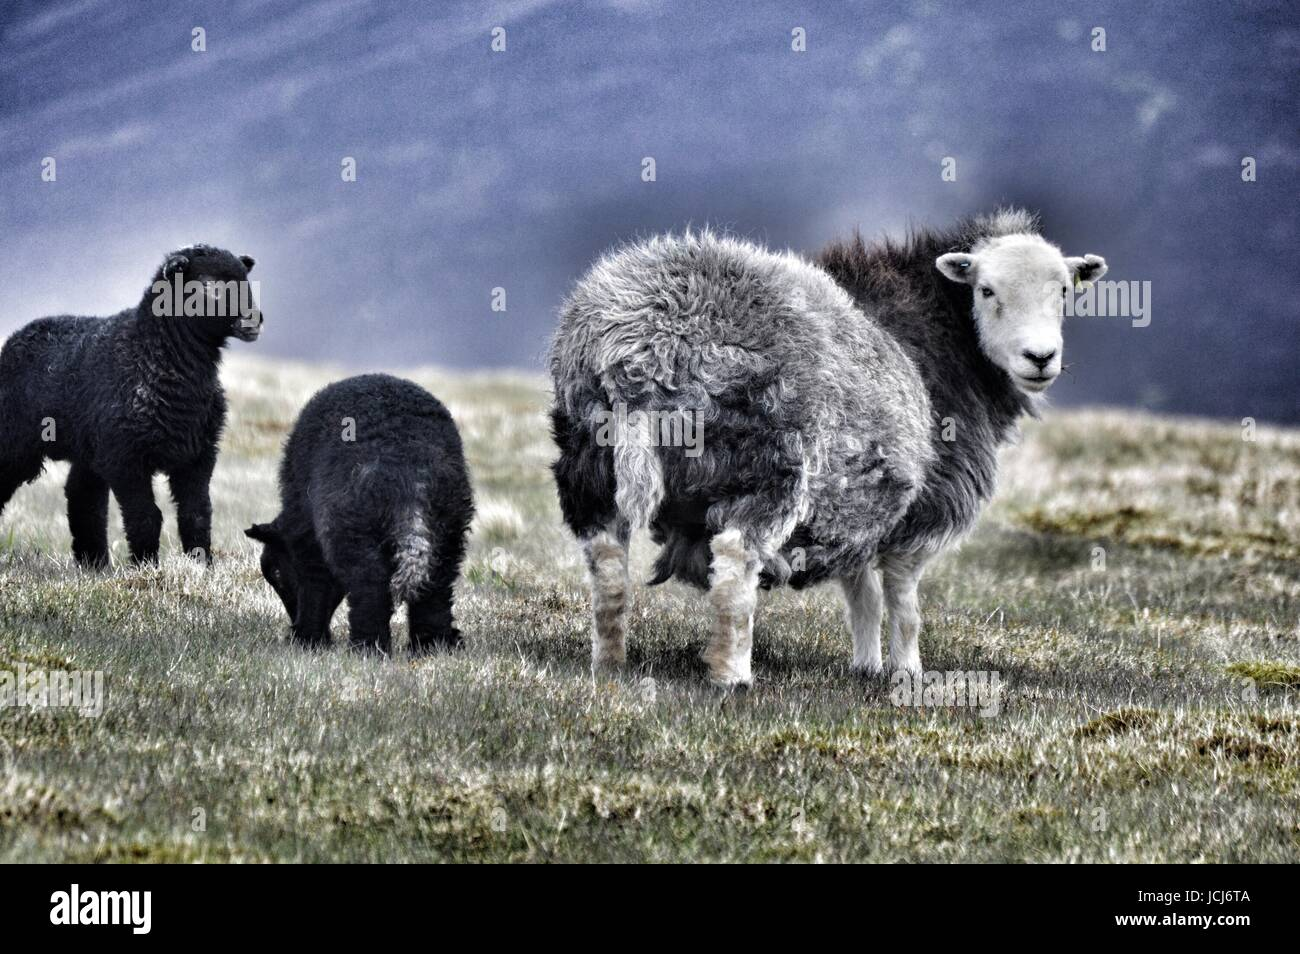 Herwick Ewe and Lambs near Skiddaw - Stock Image